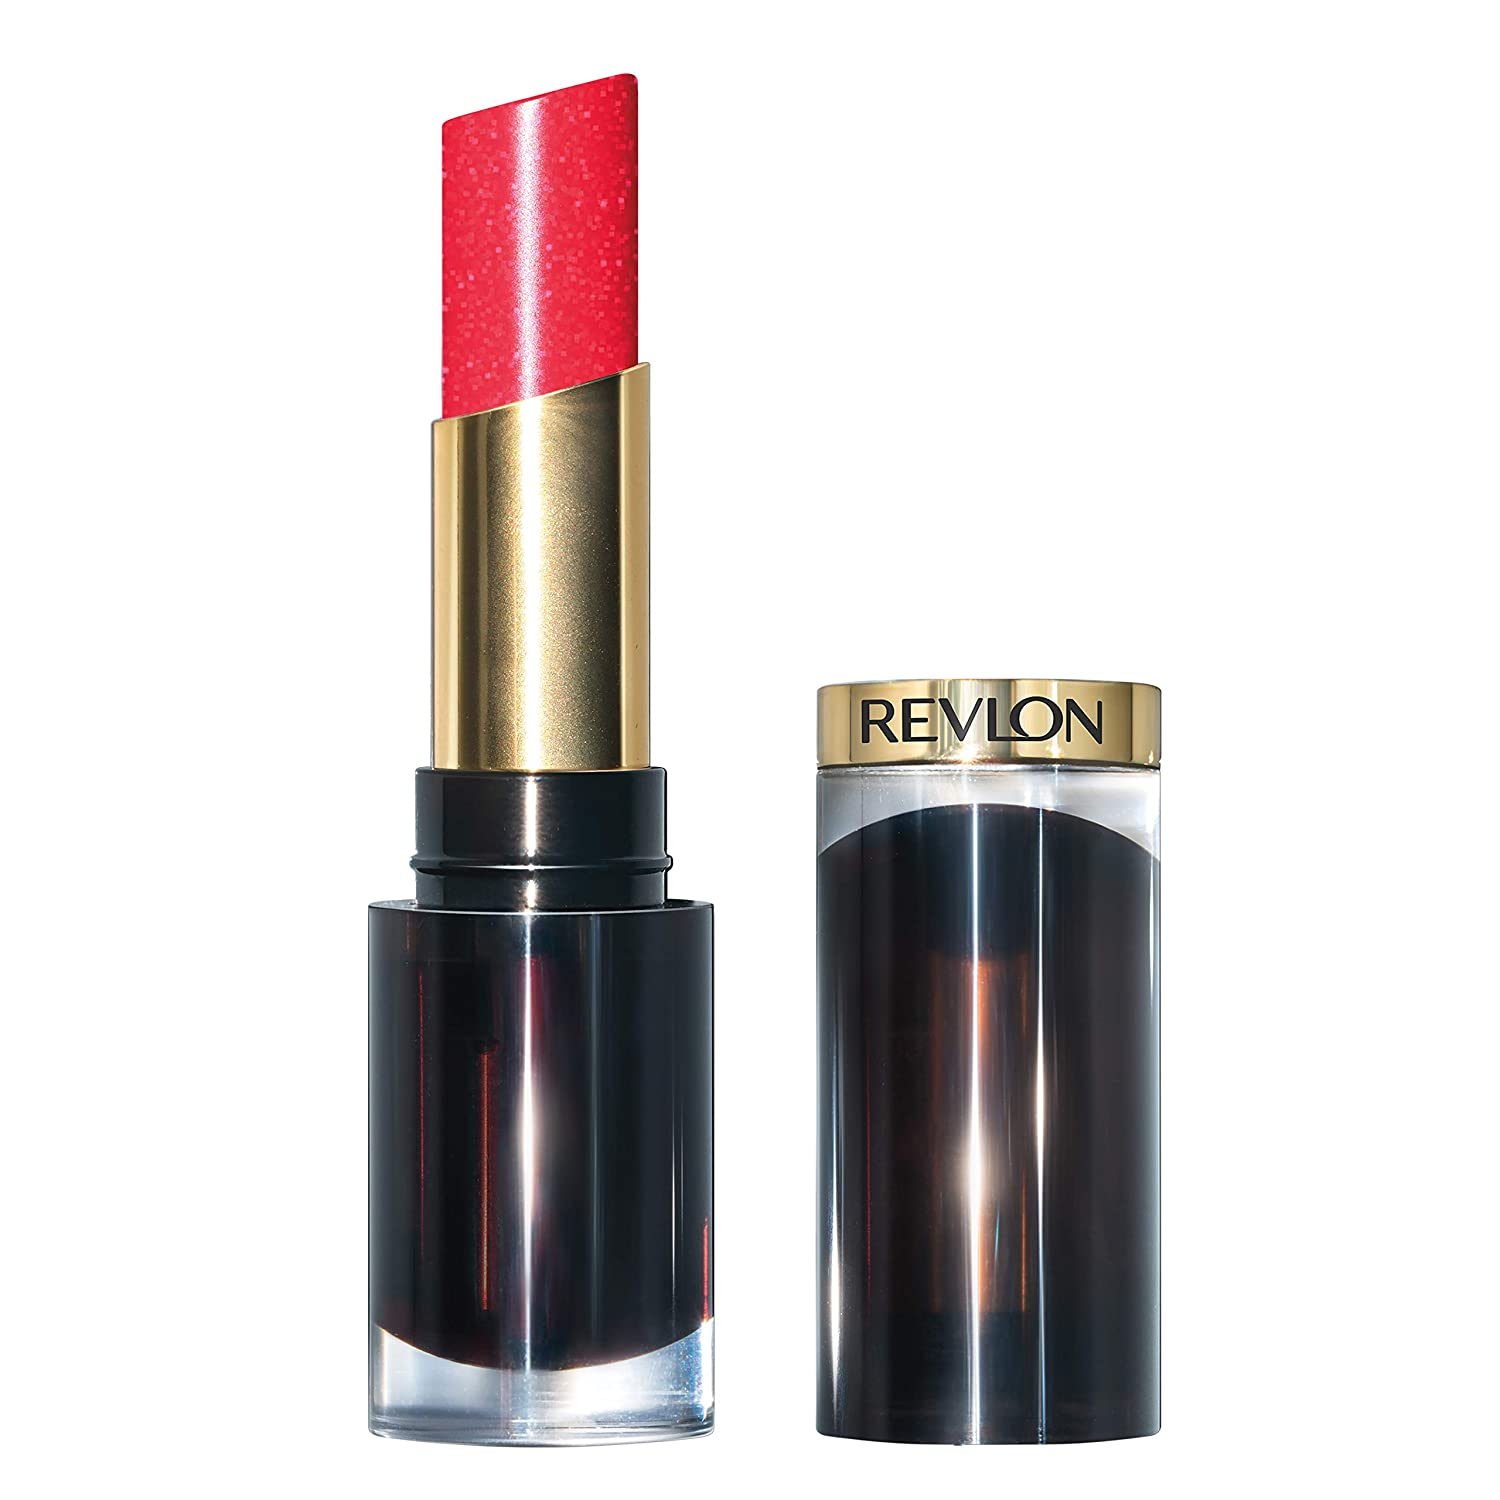 Revlon Super Lustrous Glass Shine Lipstick, Moisturizing Lipstick with Aloe and Rose Quartz in Red, 005 Fire & Ice, 0.15 oz